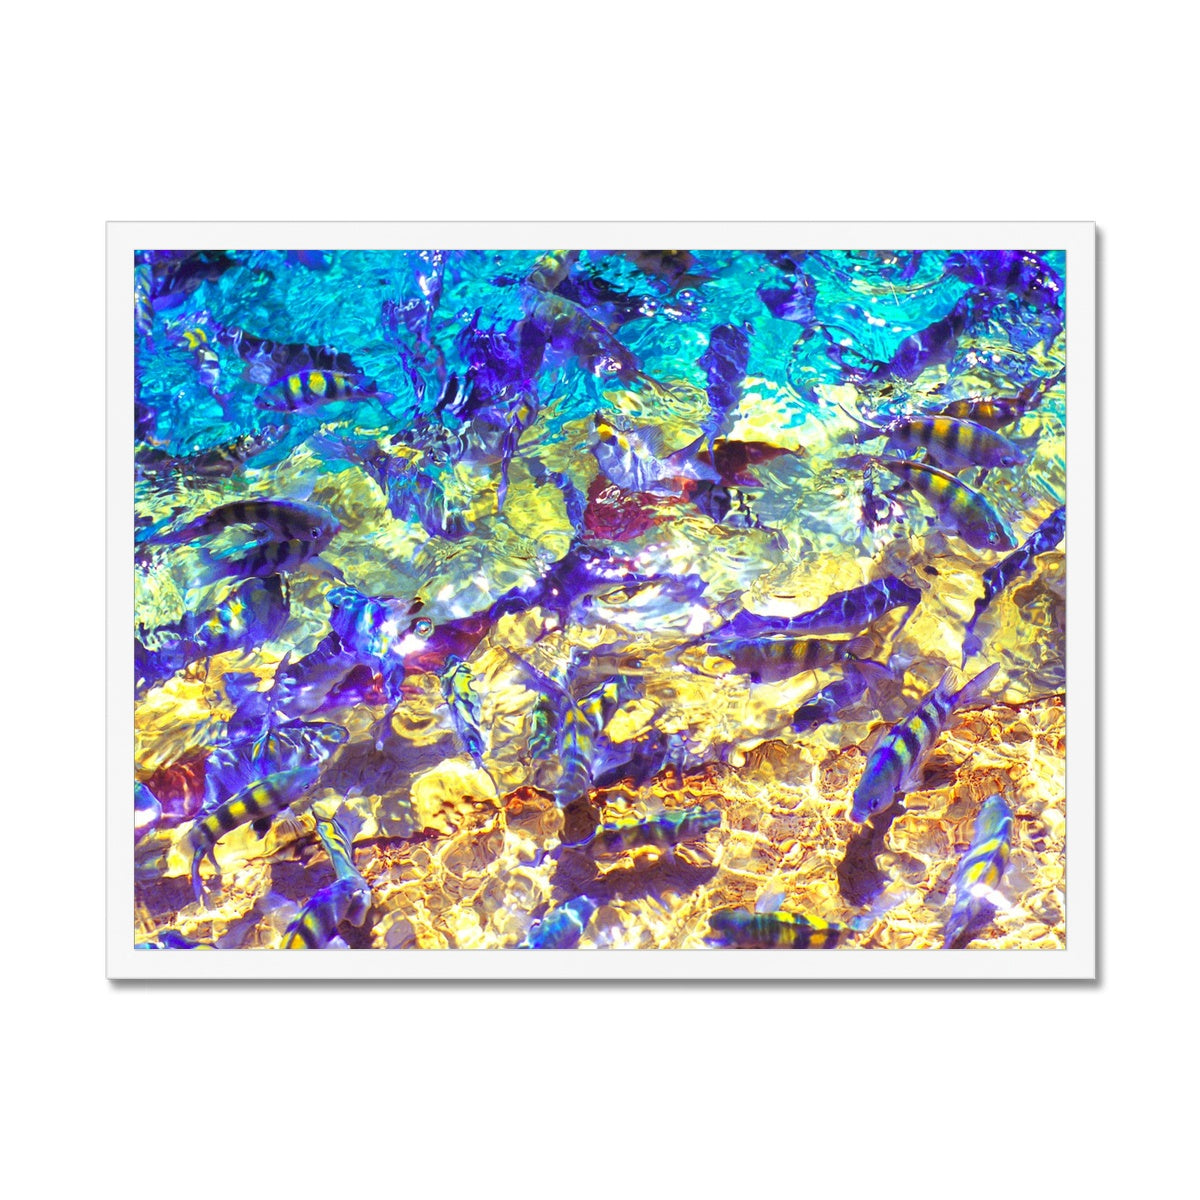 La Natural Piscina - San Andres Colombia Framed Print